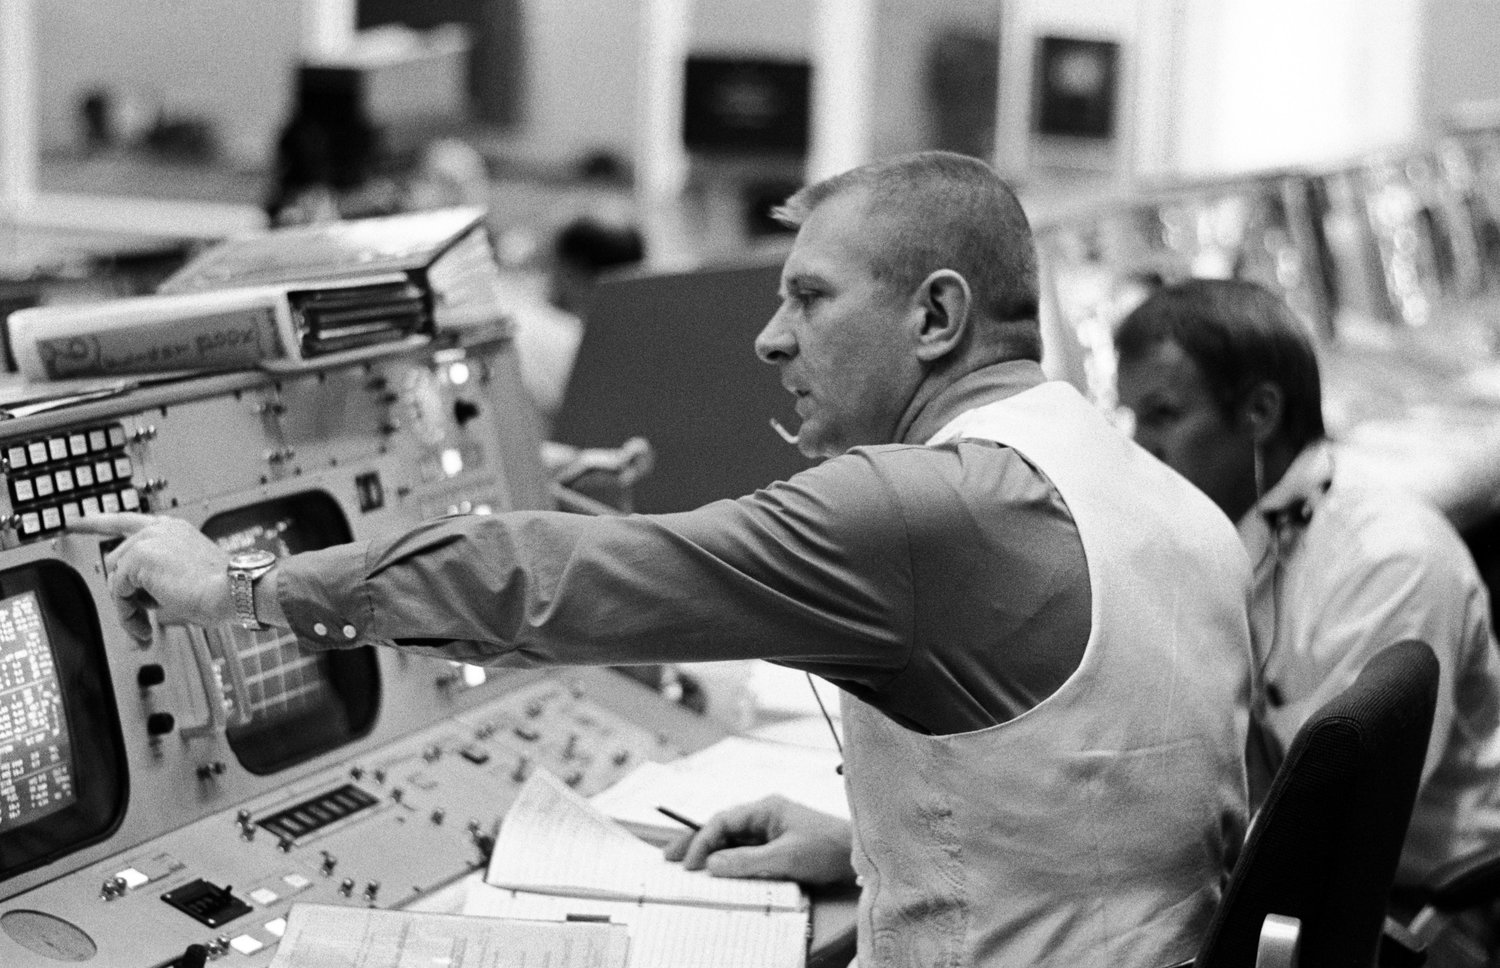 Flight director Gene Kranz is seen seated at his console in the mission operations control room in the Manned Spacecraft Center's Mission Control Center in Houston the launch of the Apollo 11 lunar landing mission July 16, 1969. Partially visible in the background is flight director Gerald D. Griffin. Kranz is a parishioner at Shrine of the True Cross Catholic Church in Dickinson, Texas, near Houston.